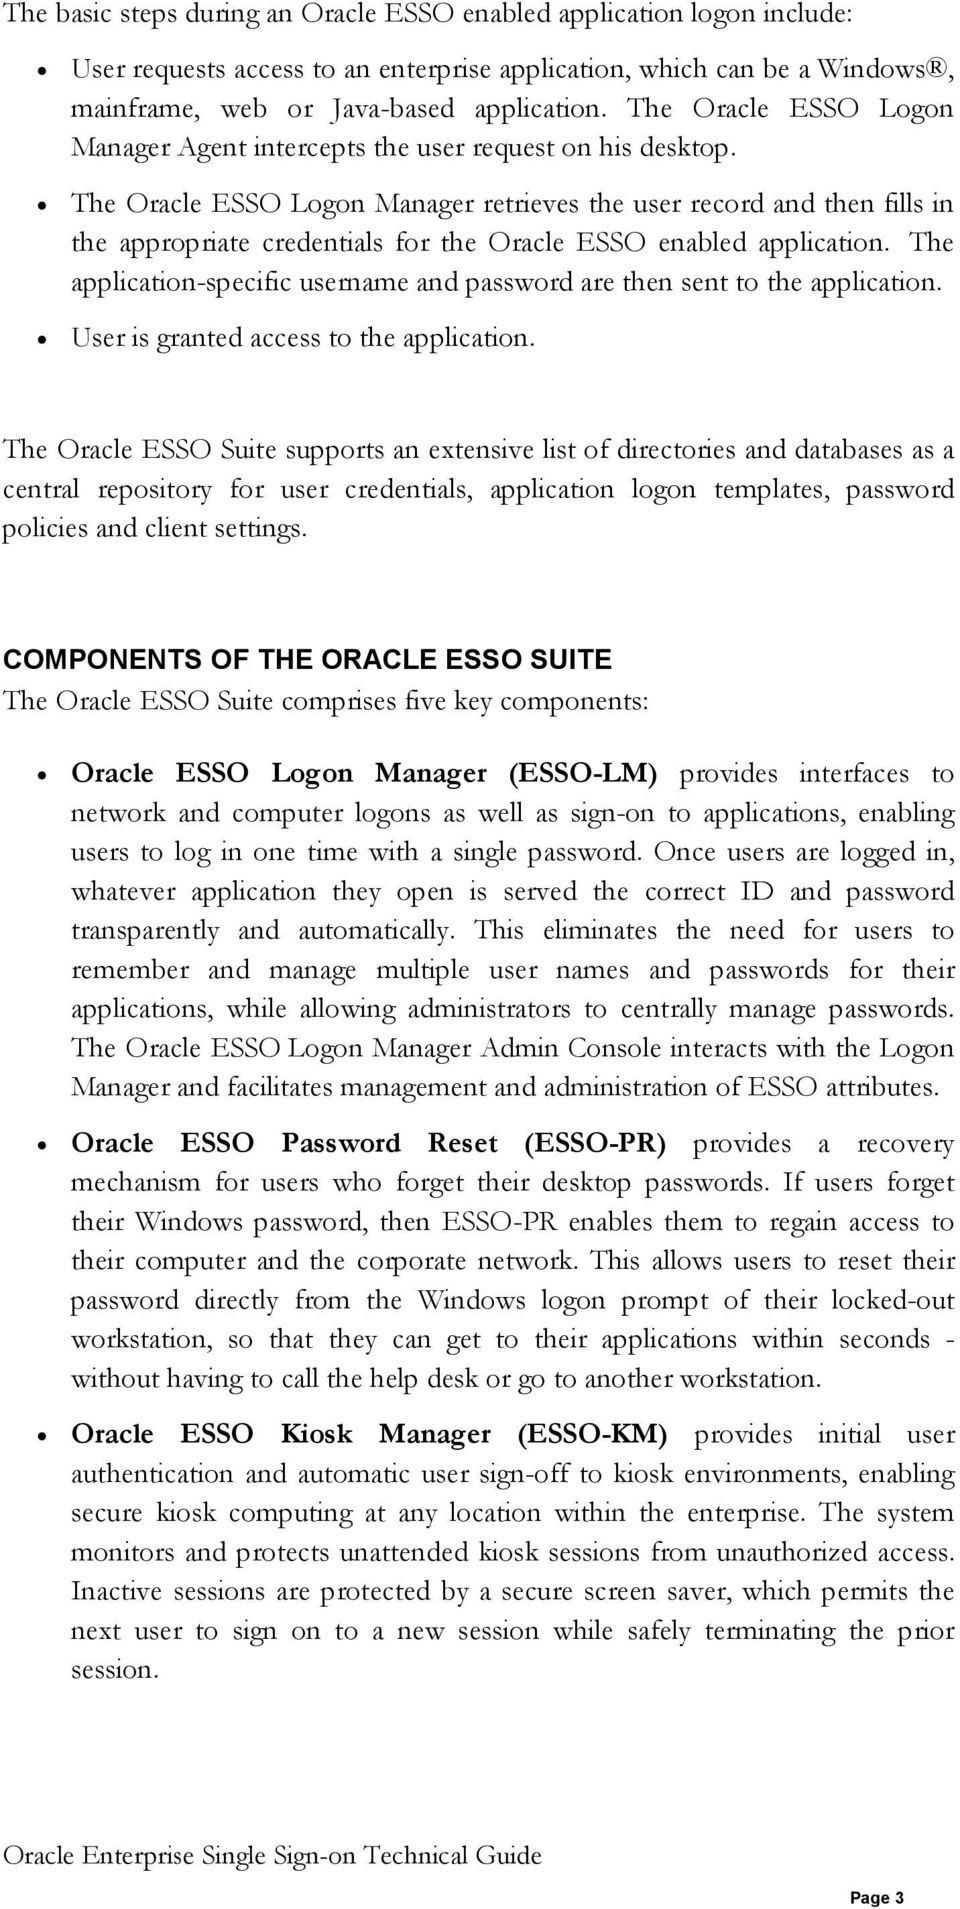 The Oracle ESSO Logon Manager retrieves the user record and then fills in the appropriate credentials for the Oracle ESSO enabled application.